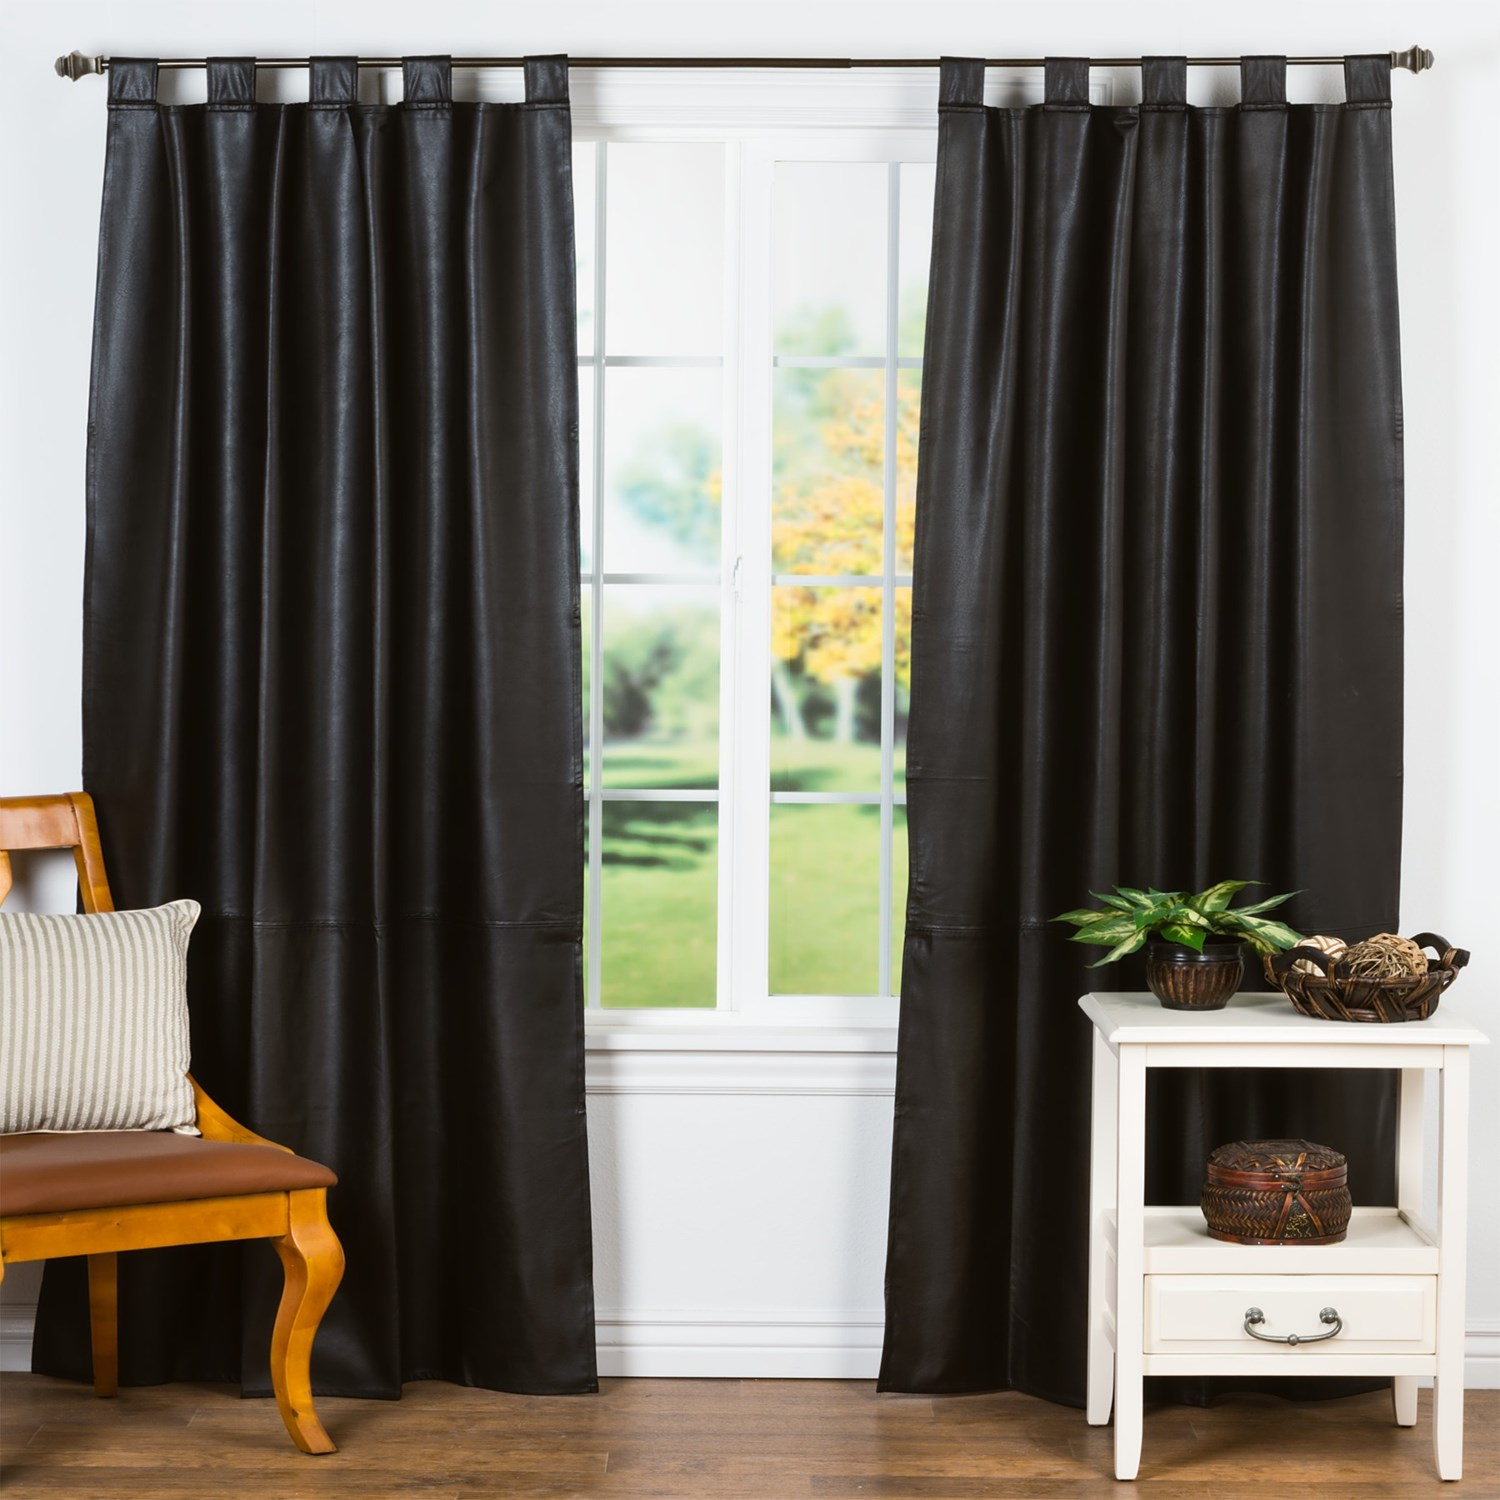 Curtains Ideas Faux Leather Inspiring Pictures Of Designs And Decorating